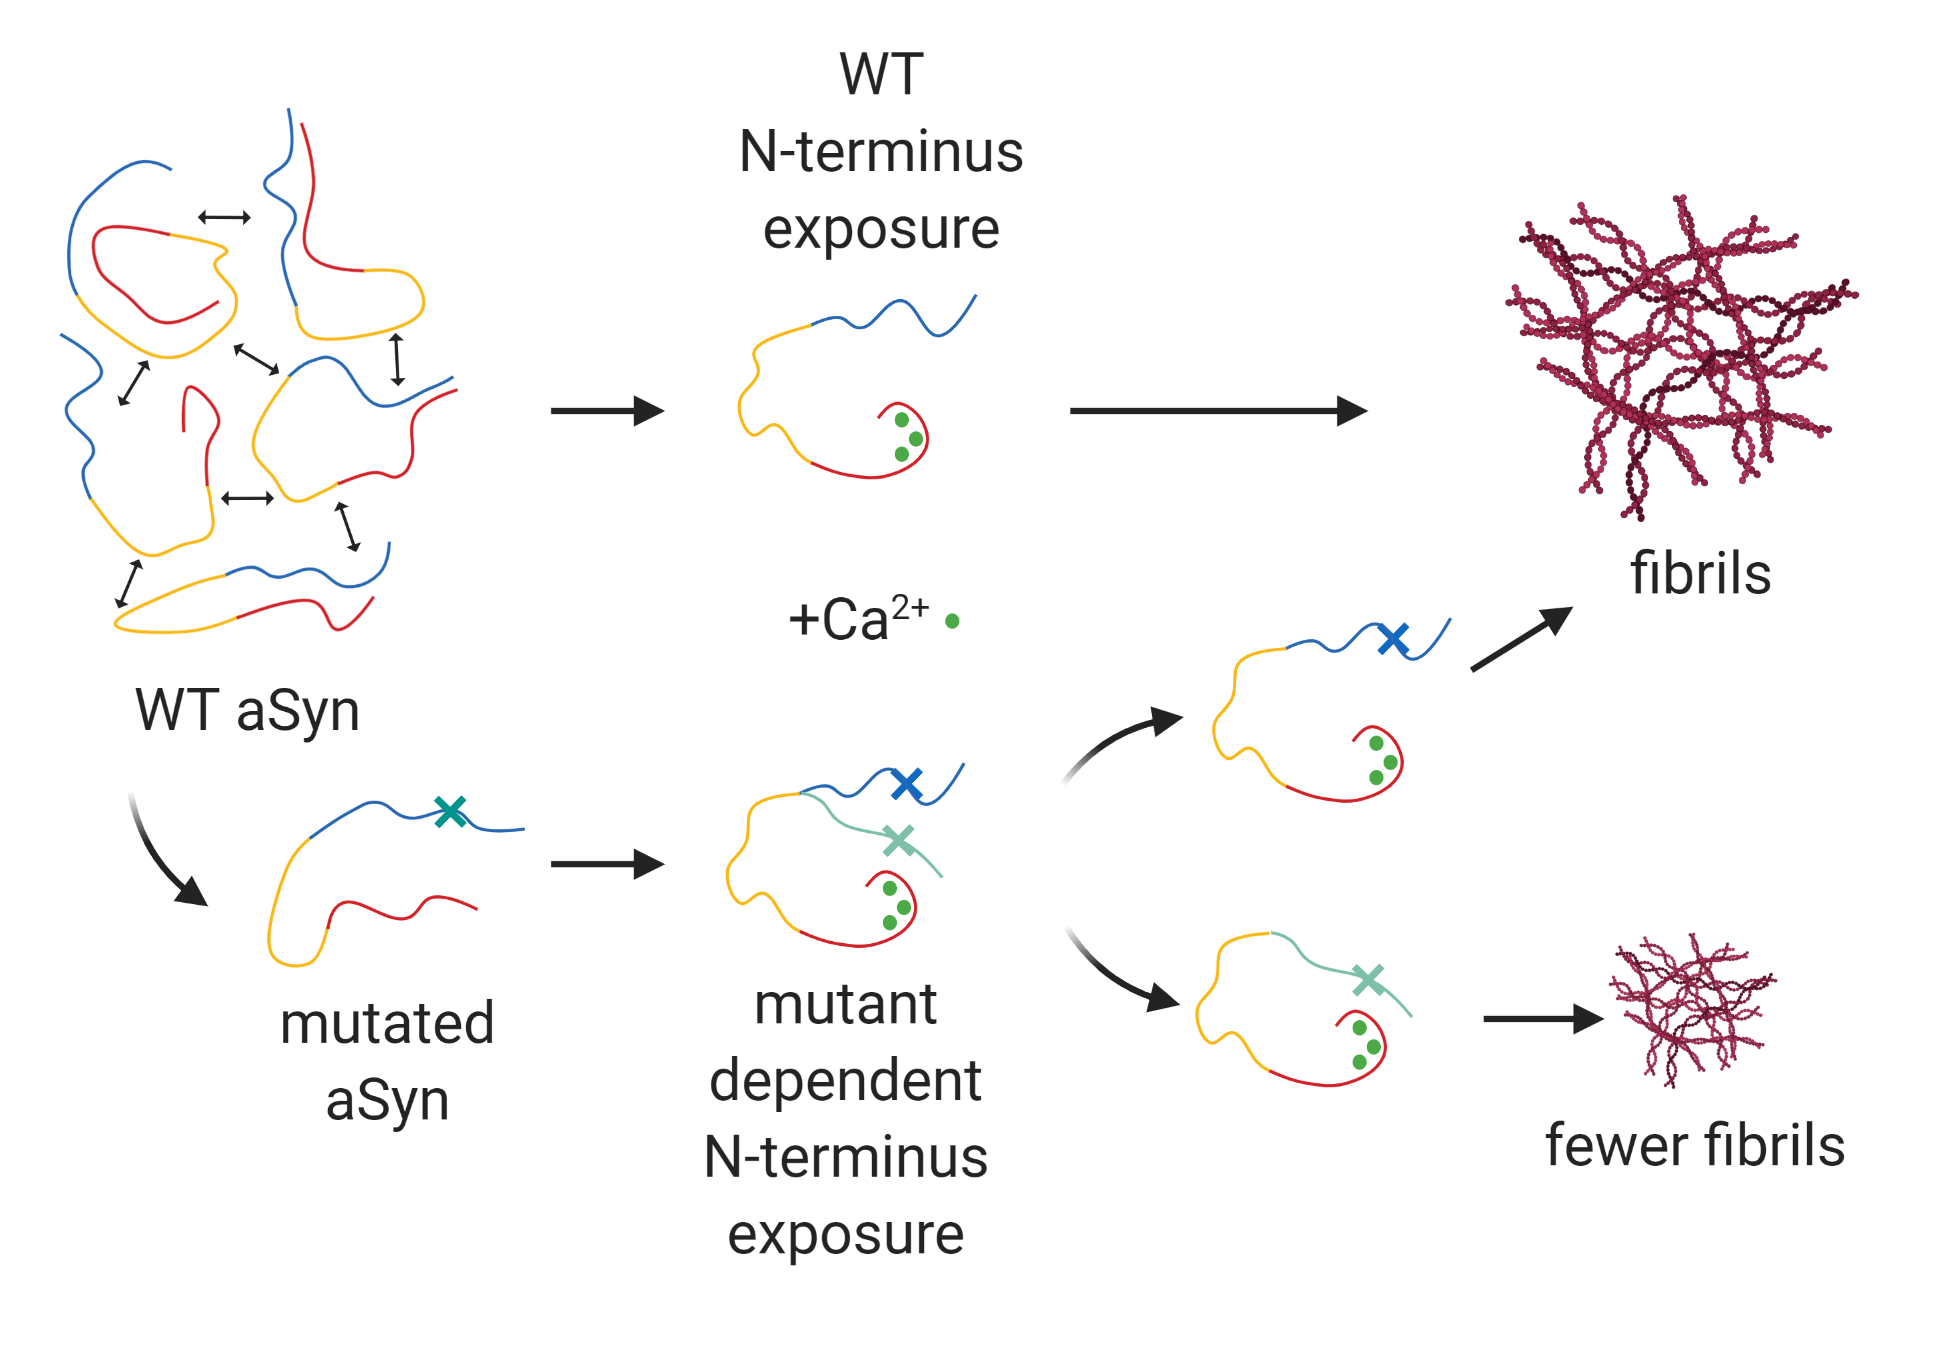 Figure showing that increased N-terminus exposure leads to the formation of more aggregated fibrils of both wild-type and mutated aSyn